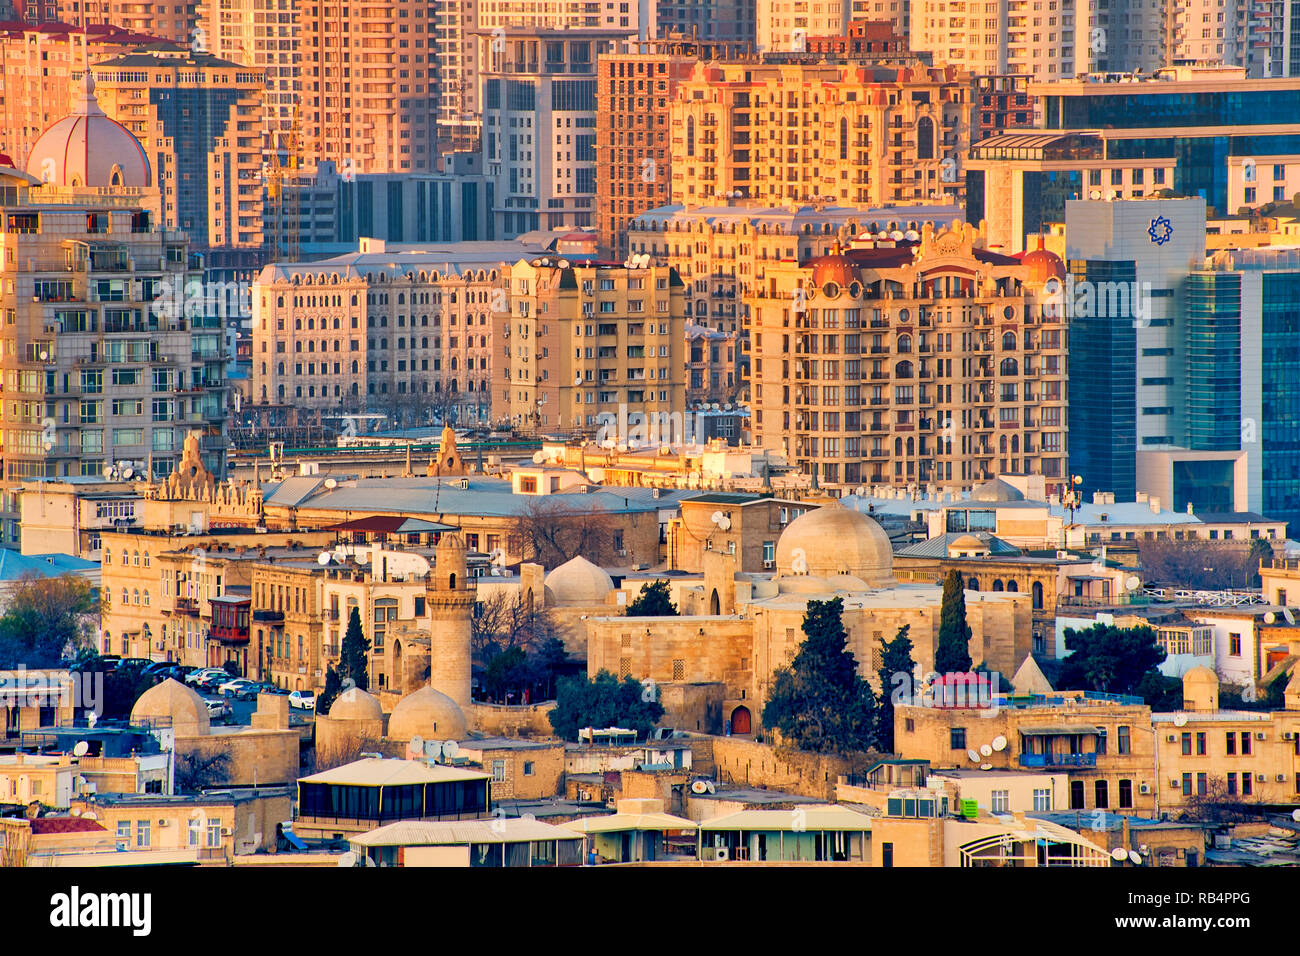 View of Baku, Azerbaijan Stock Photo